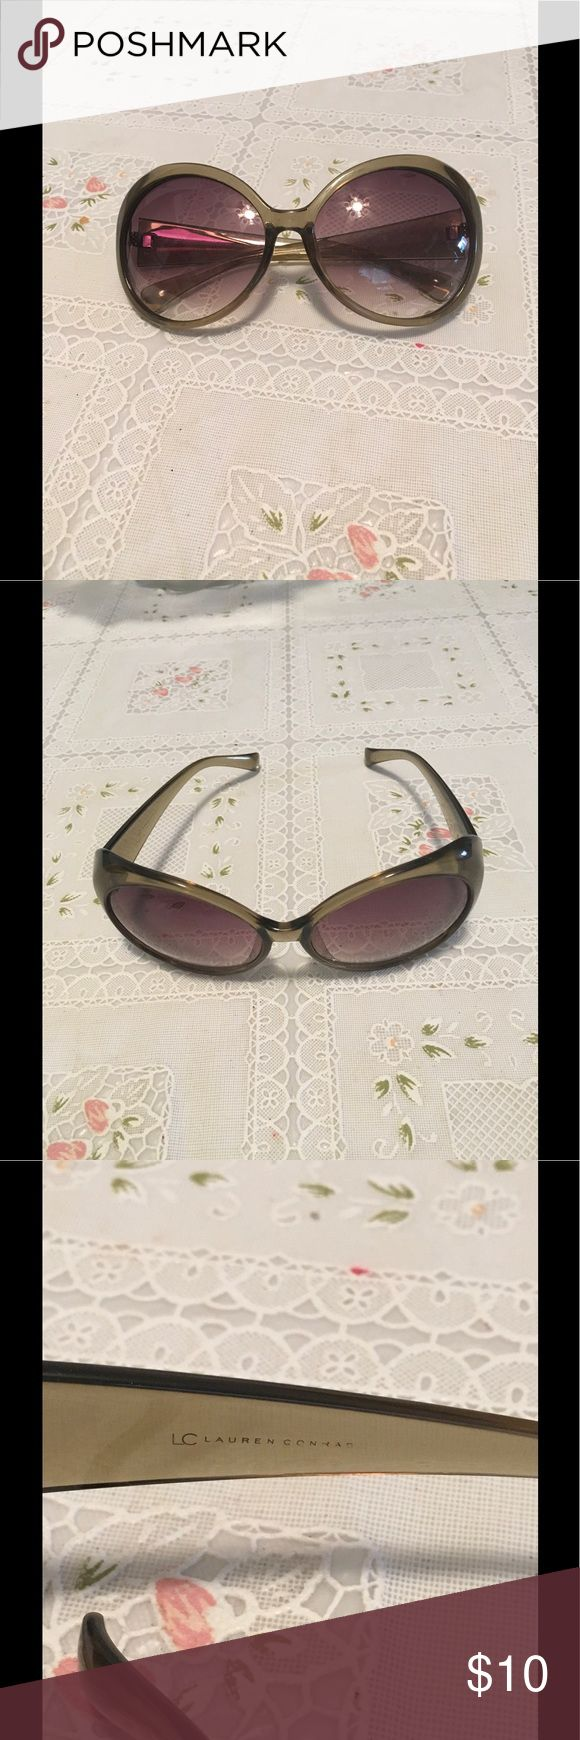 🕶 sunglasses by Lauren Conrad They are in great shape meaning...the bands aren't loose or widened.  There are minor scratches on the lens. LC Lauren Conrad Accessories Sunglasses